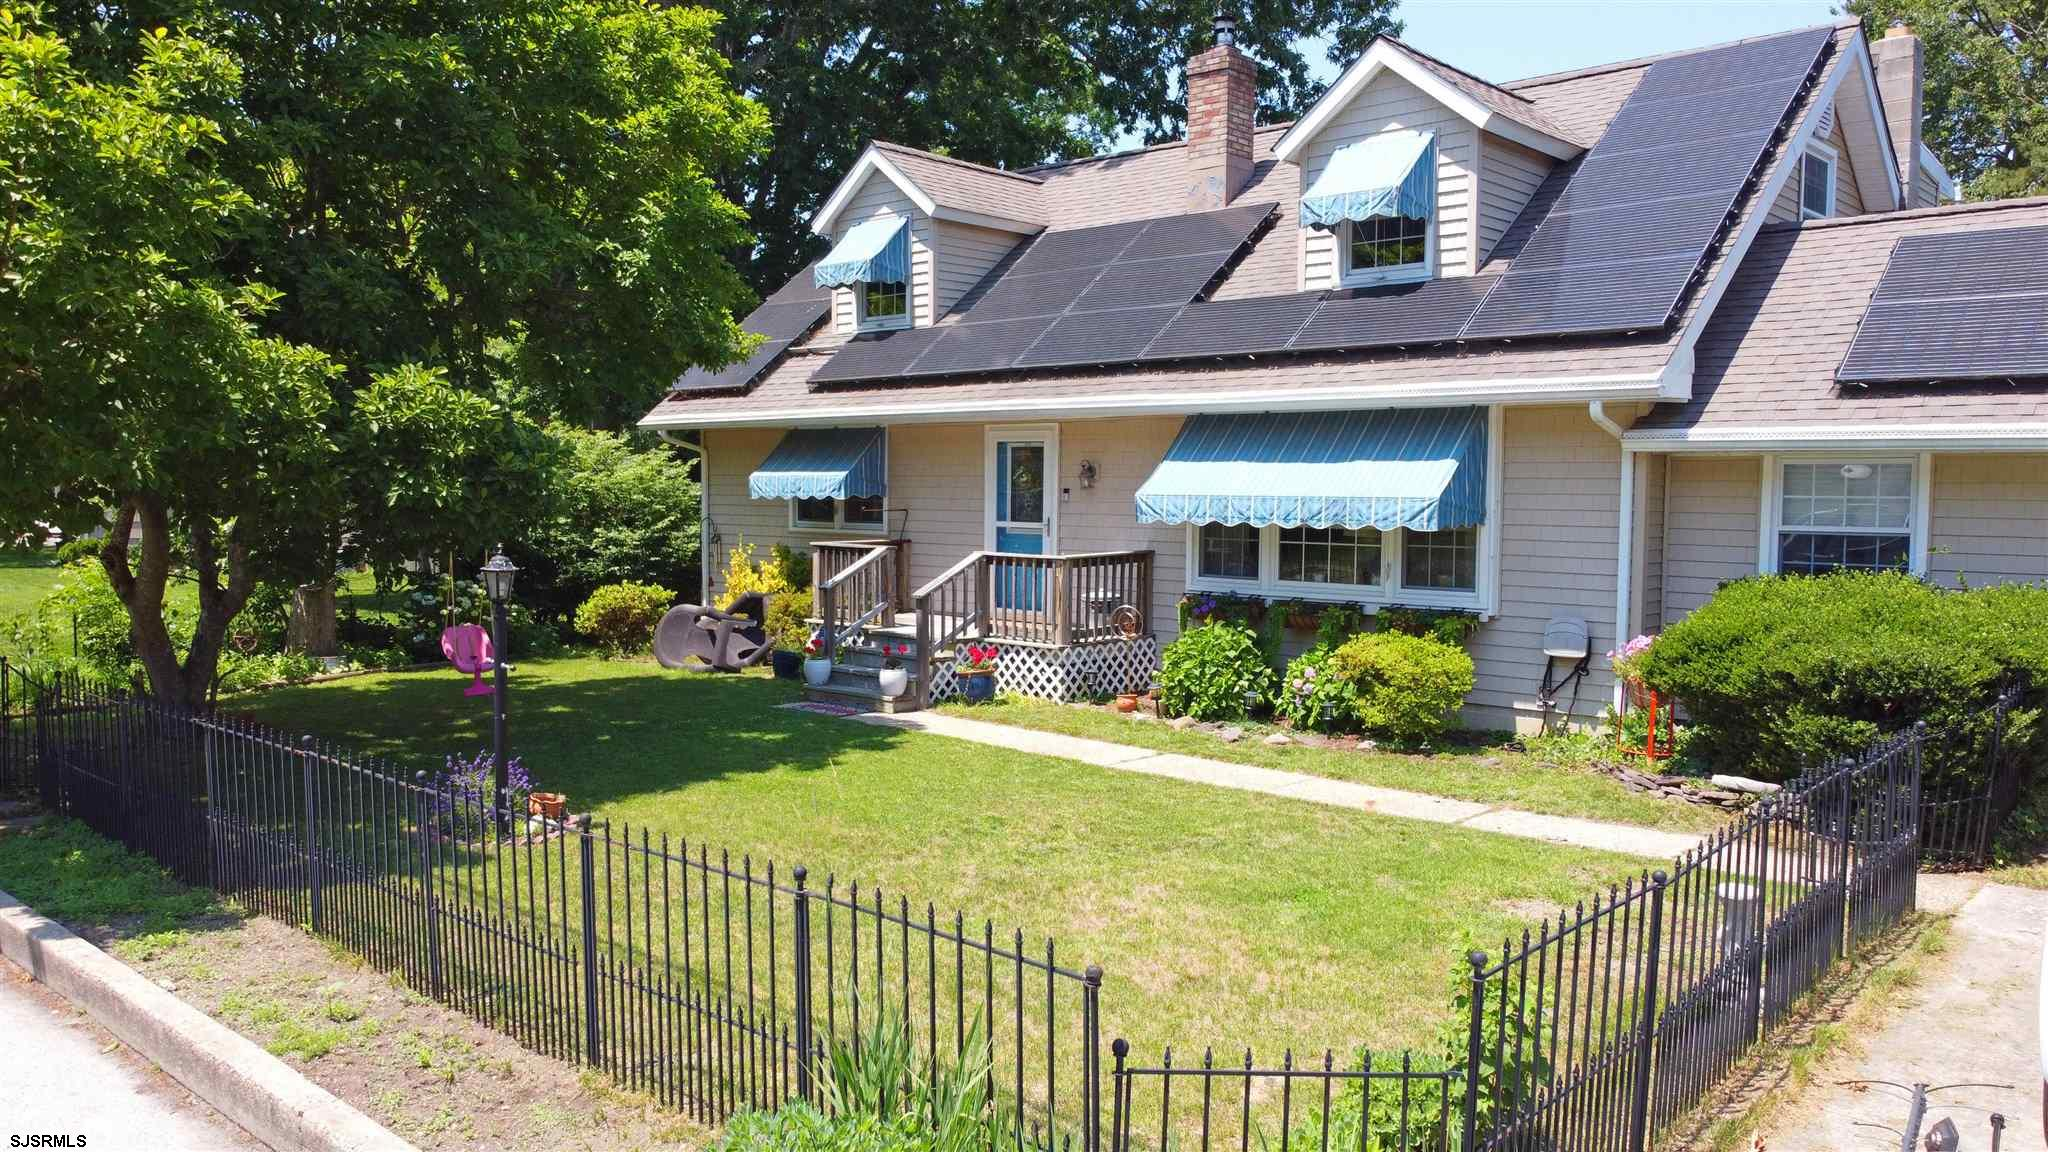 Spacious Northfield home on a large corner lot with four bedrooms and an abundant amount of flexible